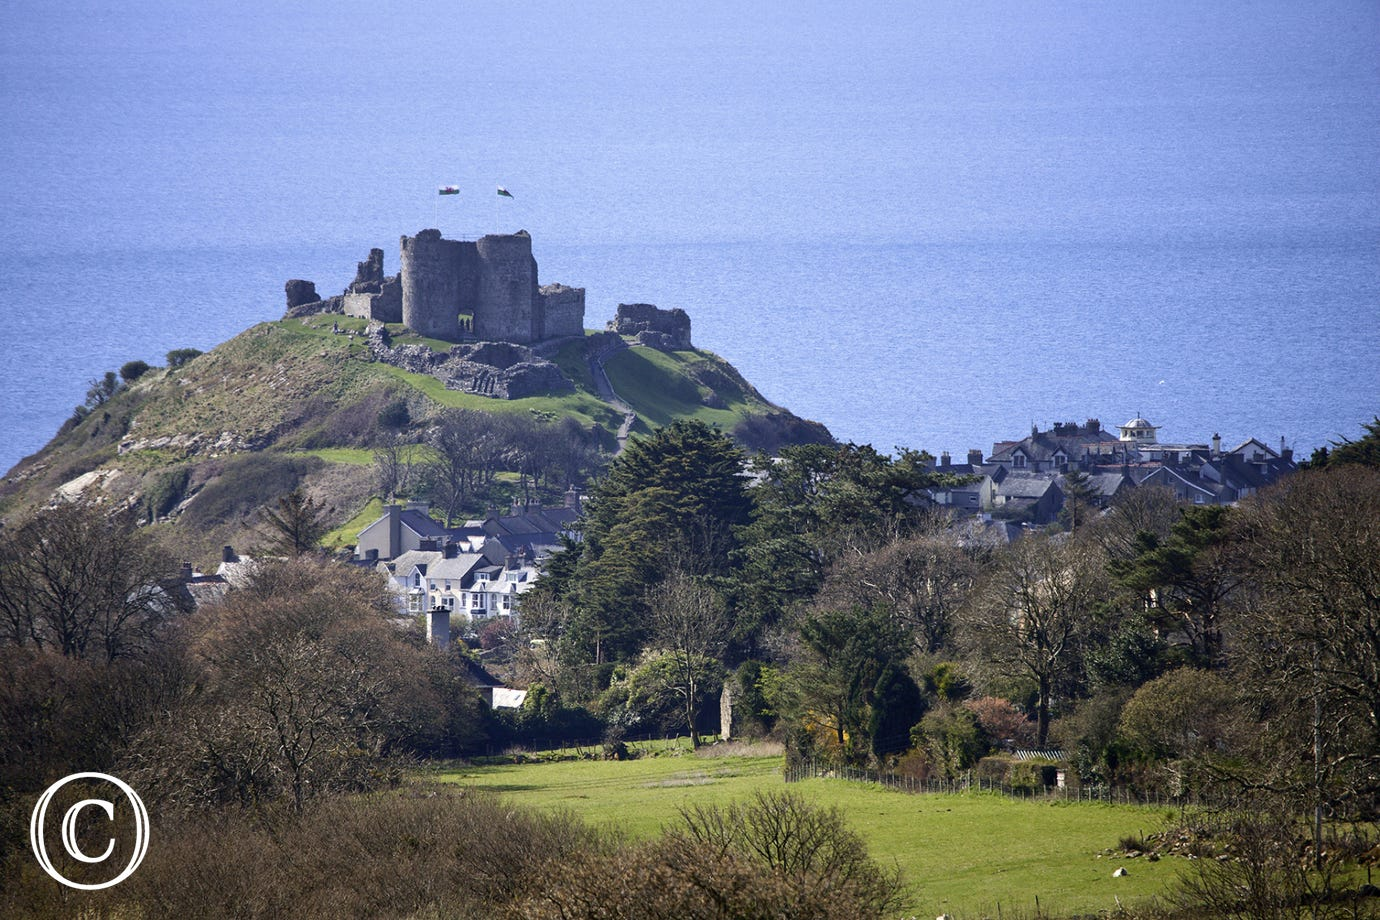 Cricieth Castle (5 miles)